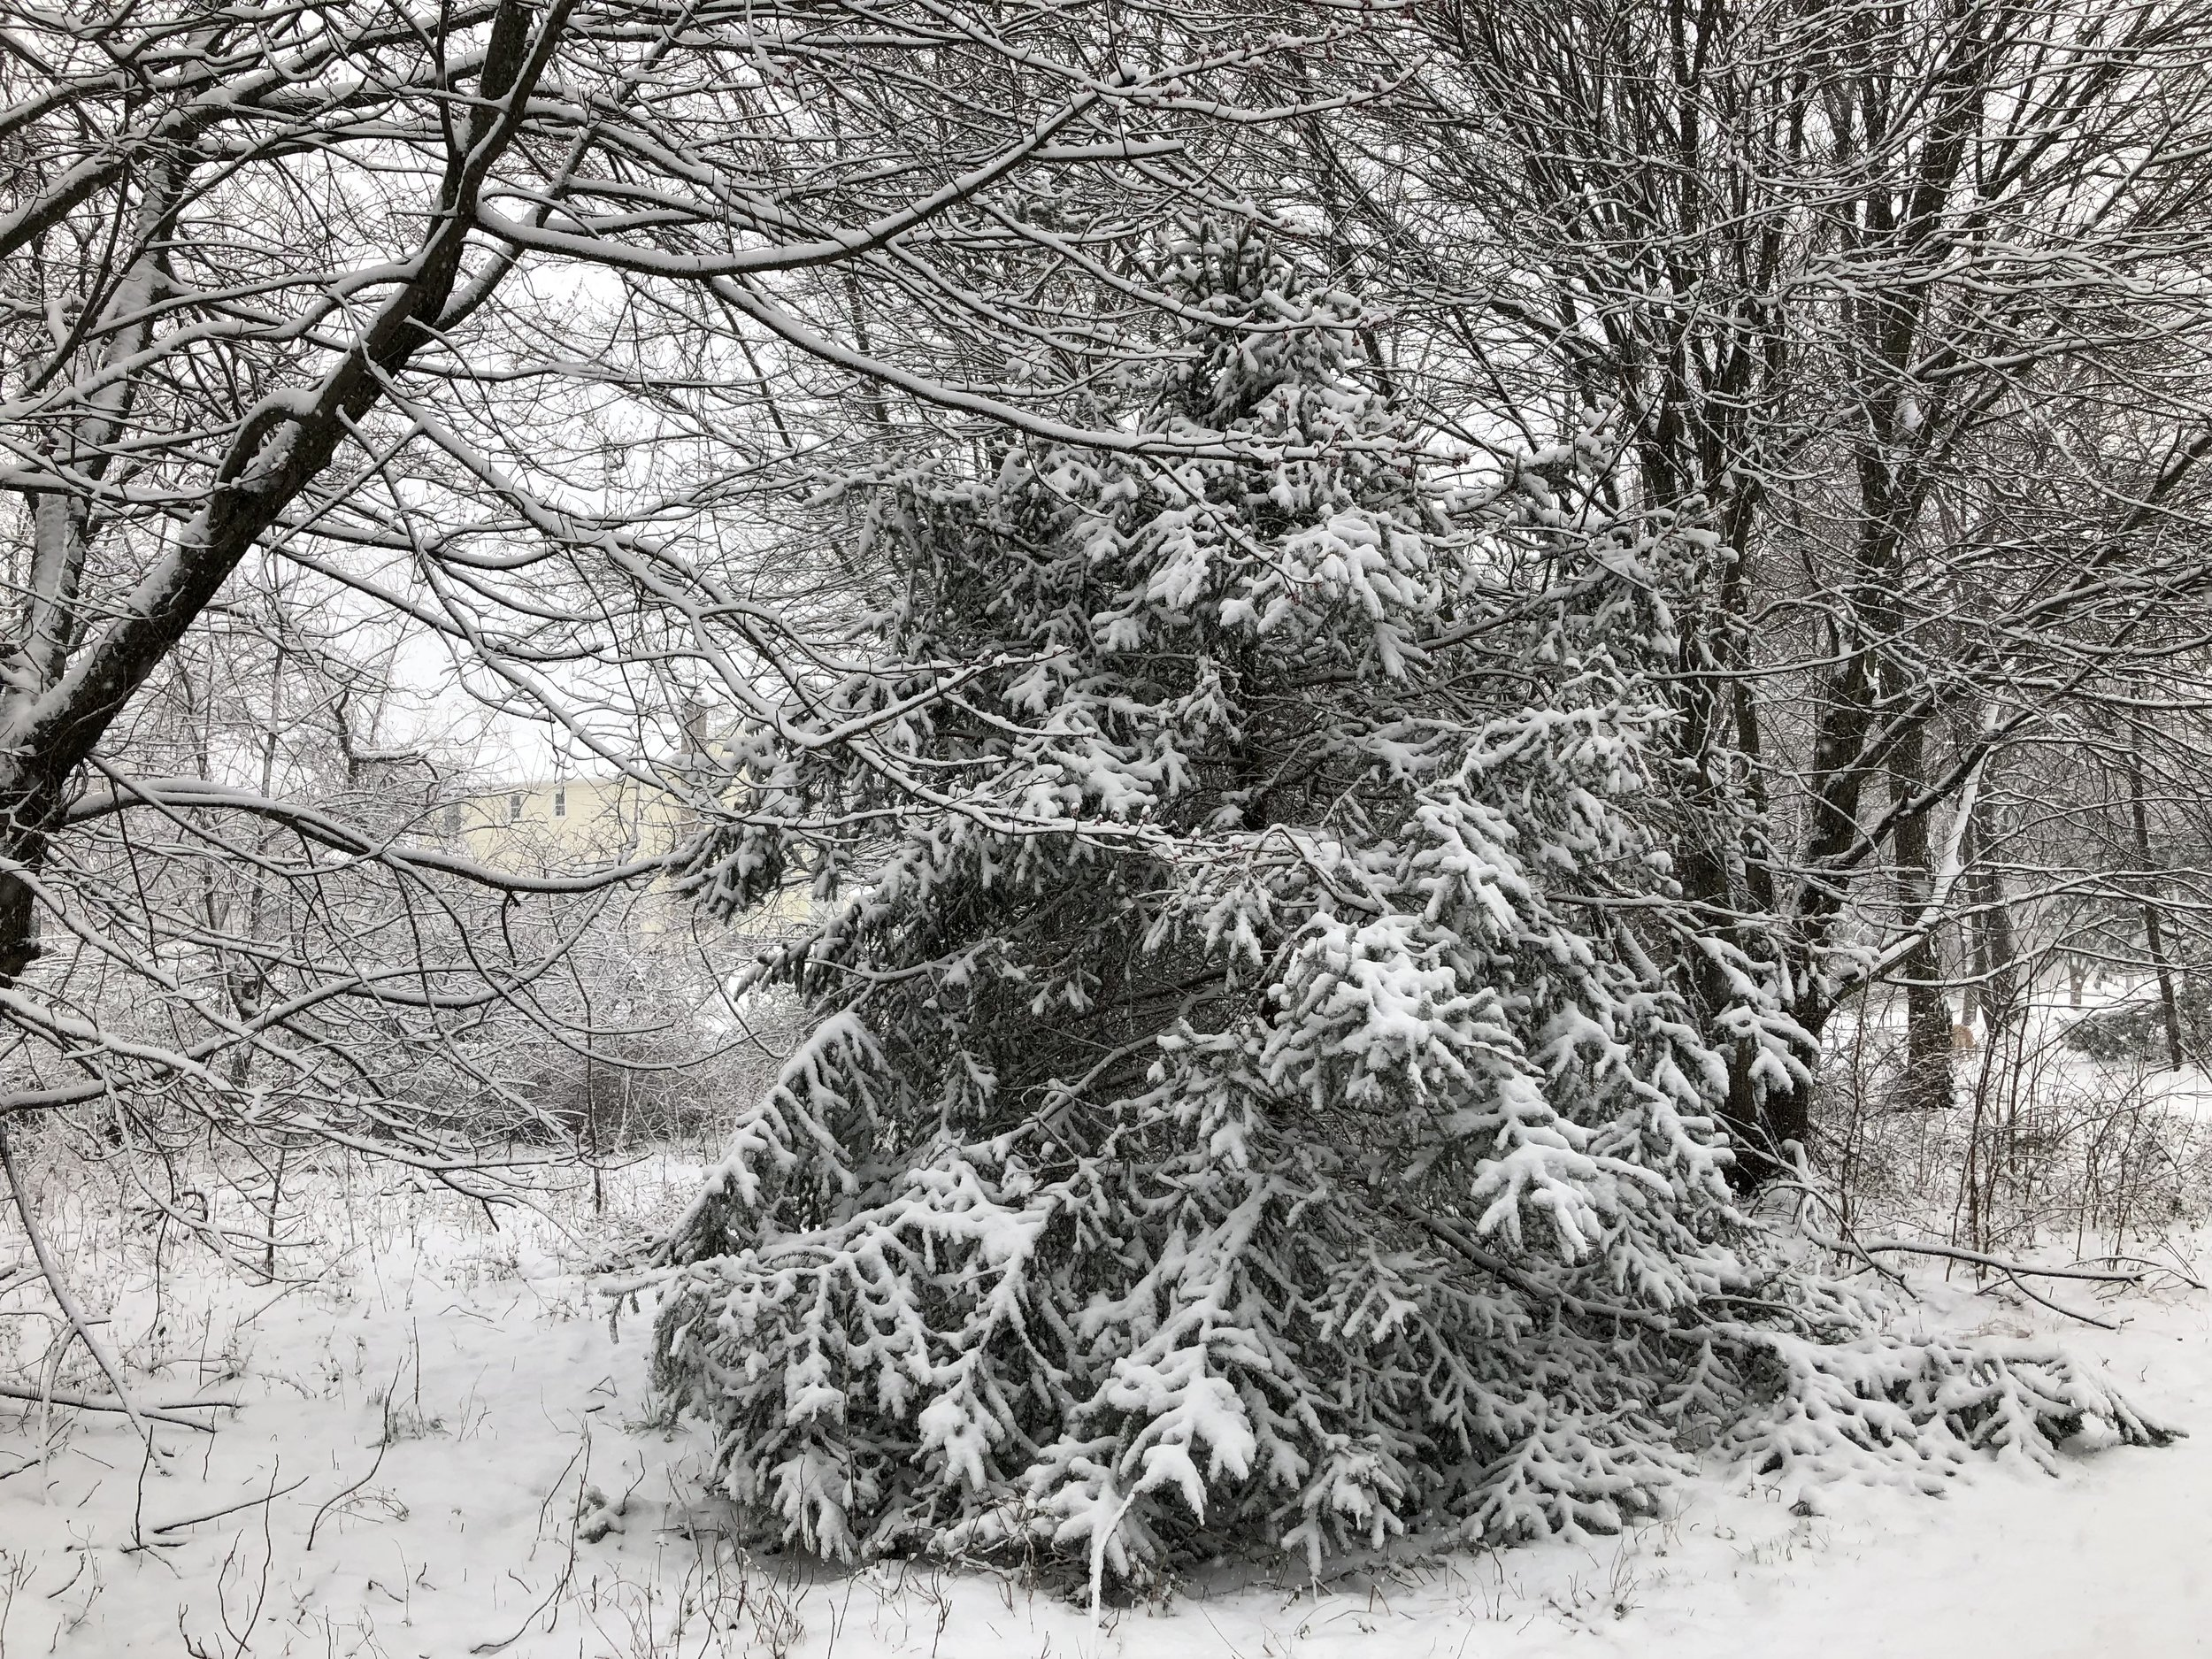 University of Illinois Extension educator Richard Hentschel suggests leaving snow to slowly melt off trees and shrubs rather than attempting to clean if from frozen and brittle branches